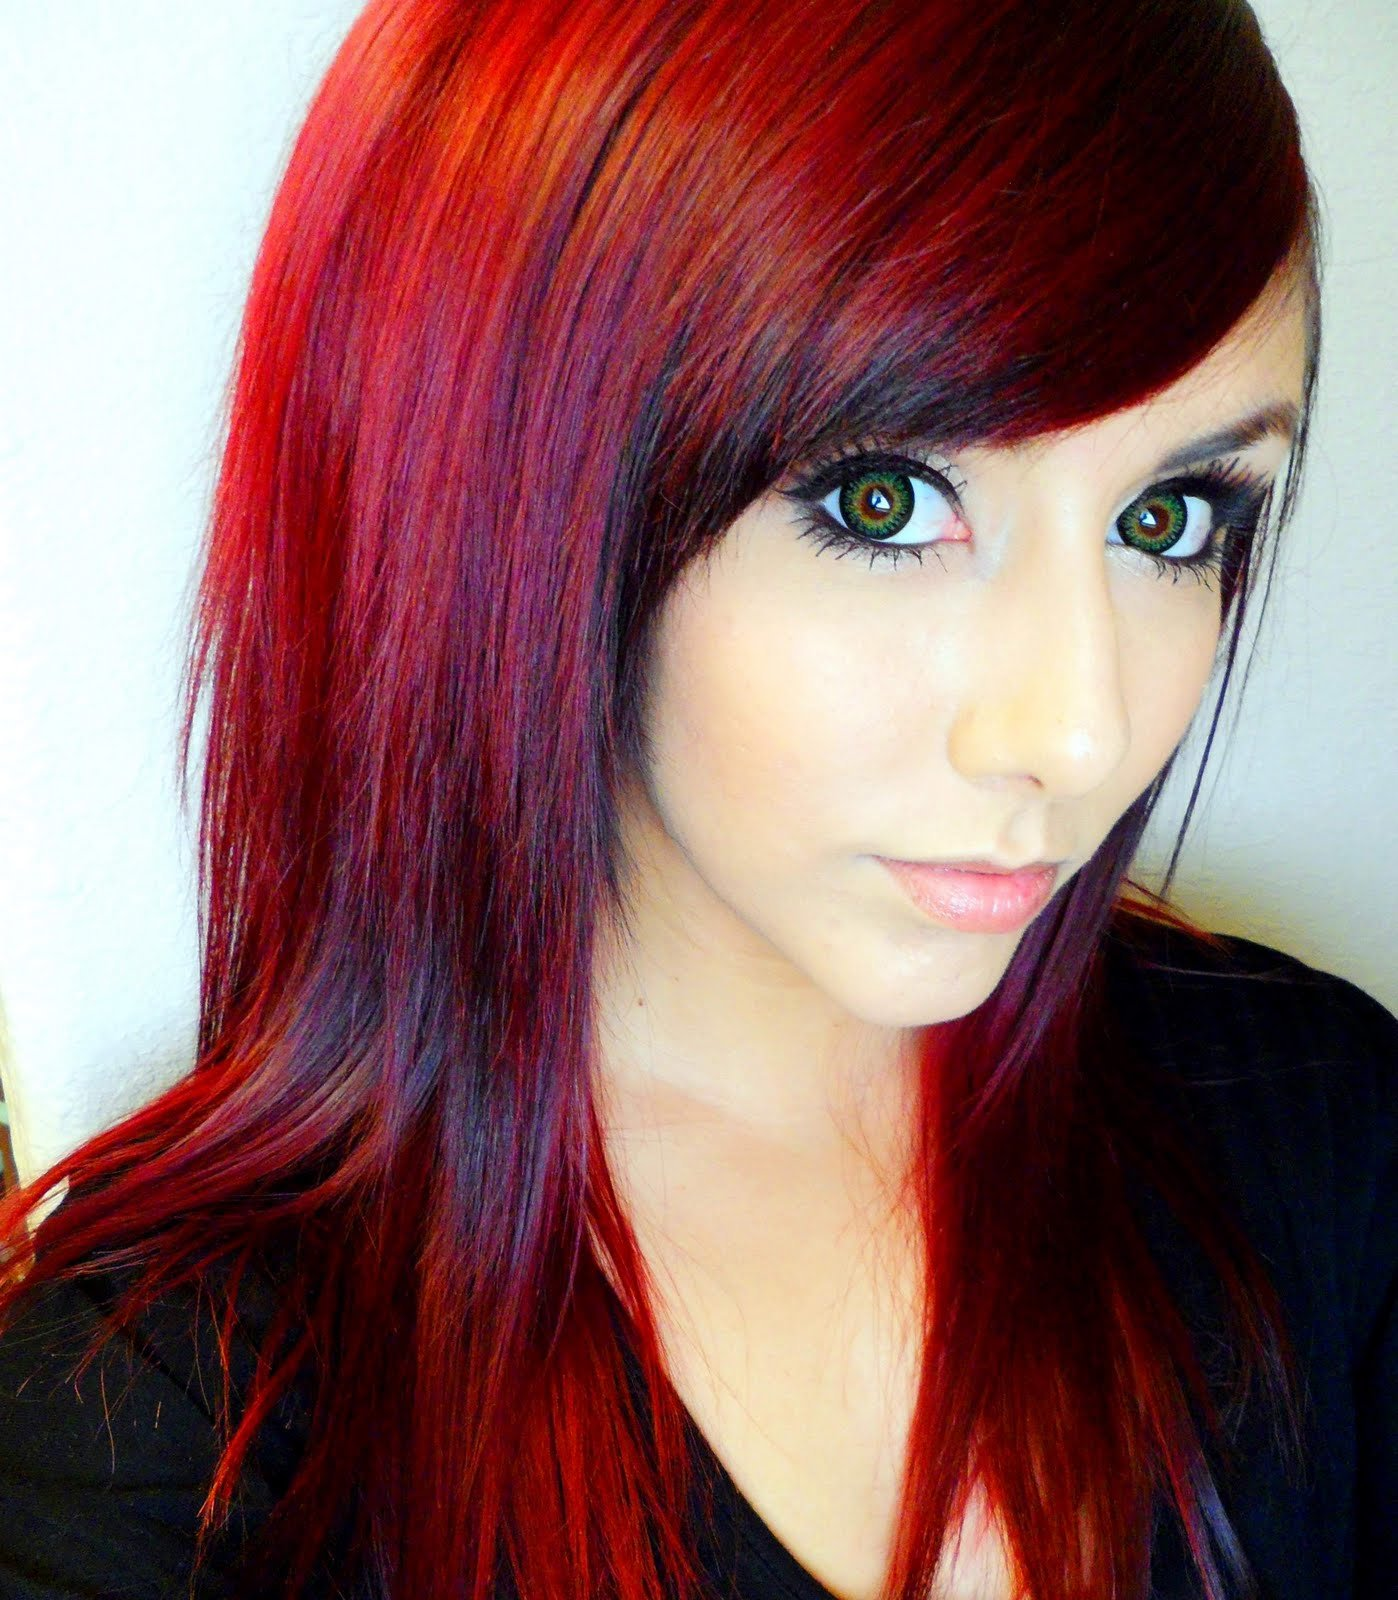 Free Technicolor My Hair Color How To Get Dark Red Hair Wallpaper